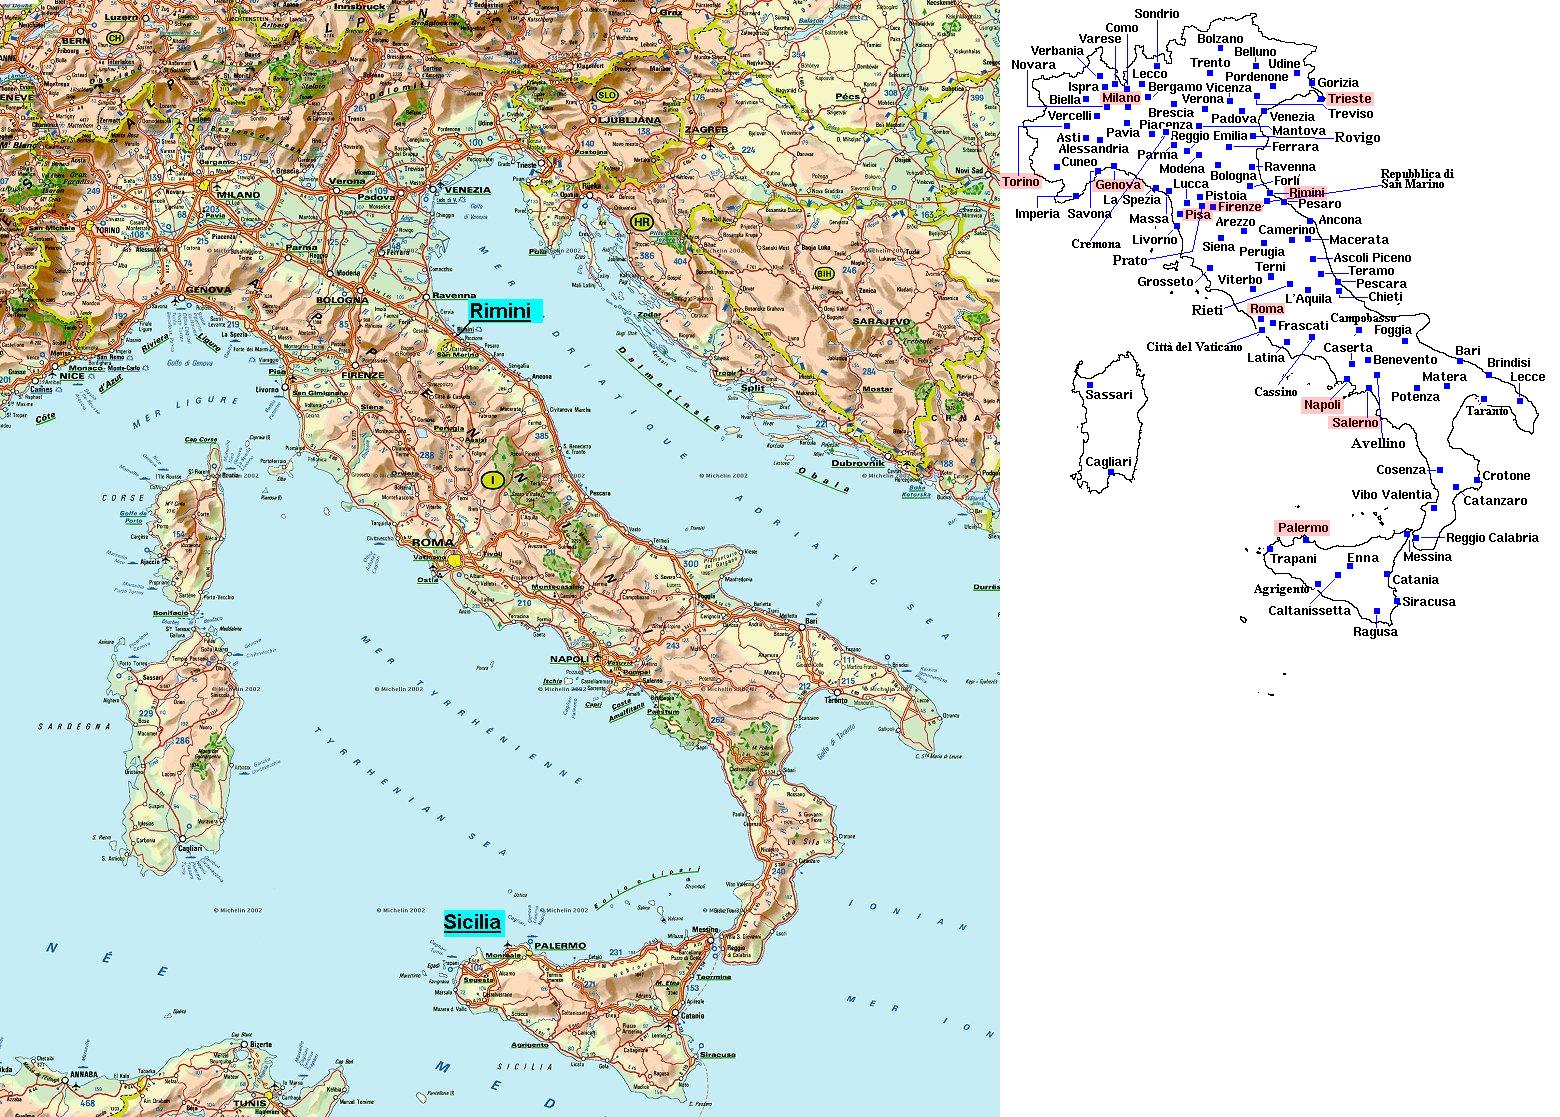 Maps of Italy | Map Liry | Maps of the World Detailed Map Of Italy With Cities on detailed map of positano italy, detailed map of lazio italy, detailed map of texas cities, detailed map of northern italy, detailed map southern italy, detailed map of calabria italy, all of italy maps with cities, detailed map of italy print, italy and cities, detailed map of tuscany italy, detailed map of massachusetts cities, detailed map florence italy, detailed map of africa, detailed map asia, detailed map of southern spain, detailed map venice italy,